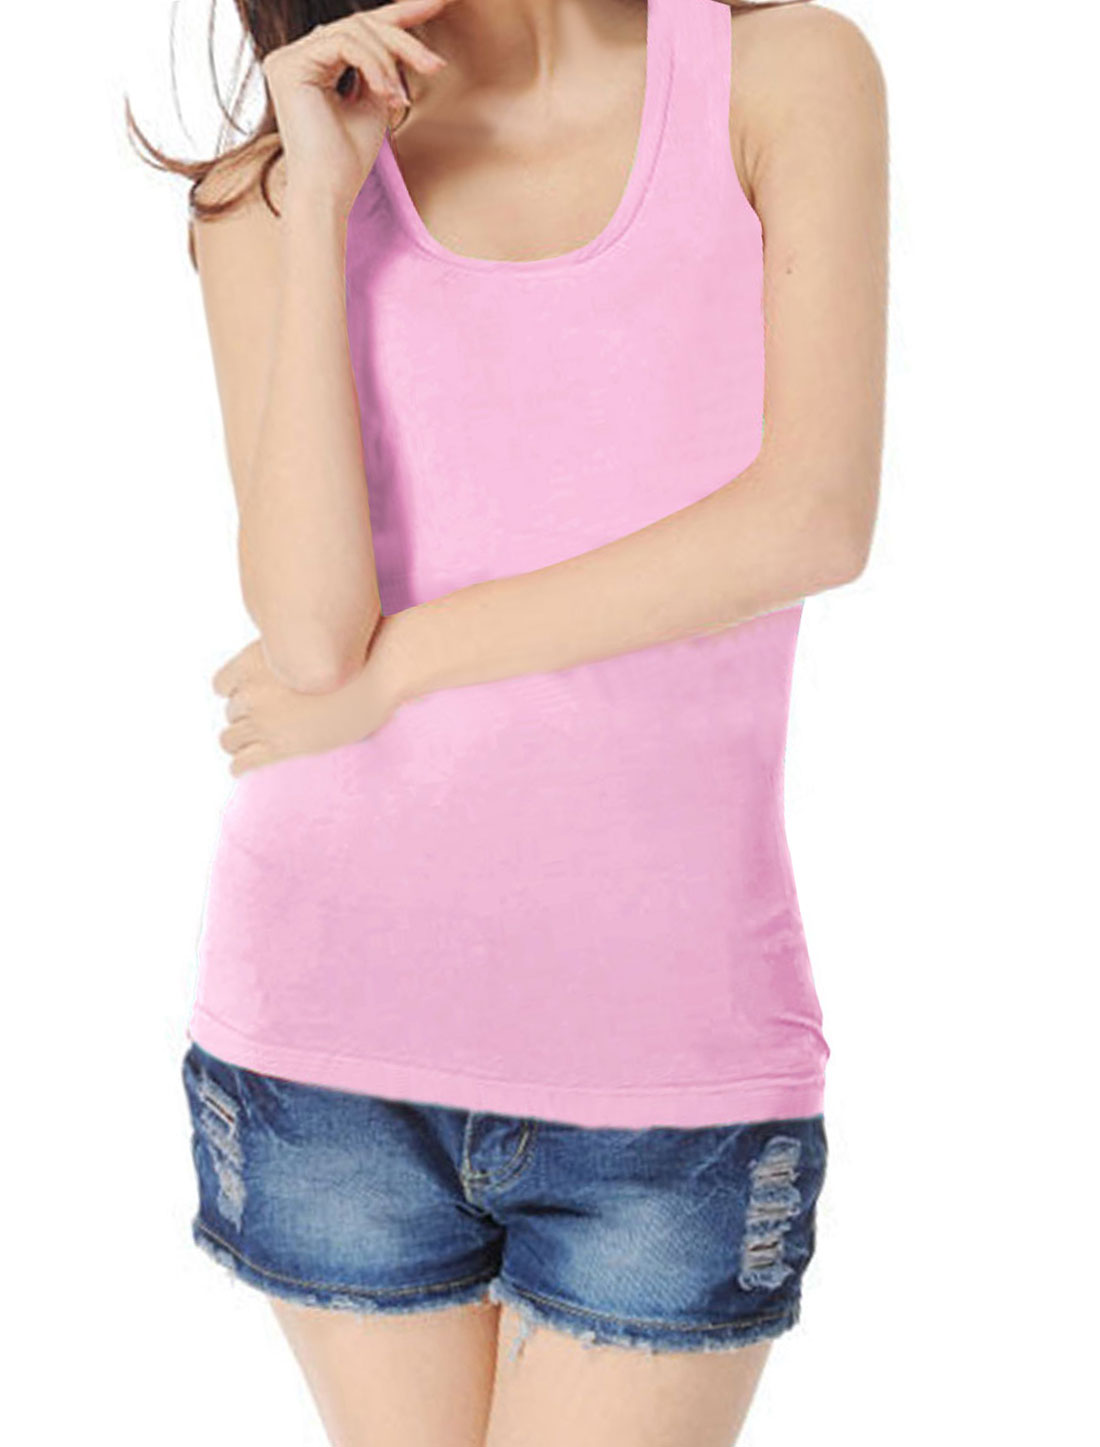 Woman Ribbing Pure Pink Stretch Closefitting Racer Back Tank Top XS